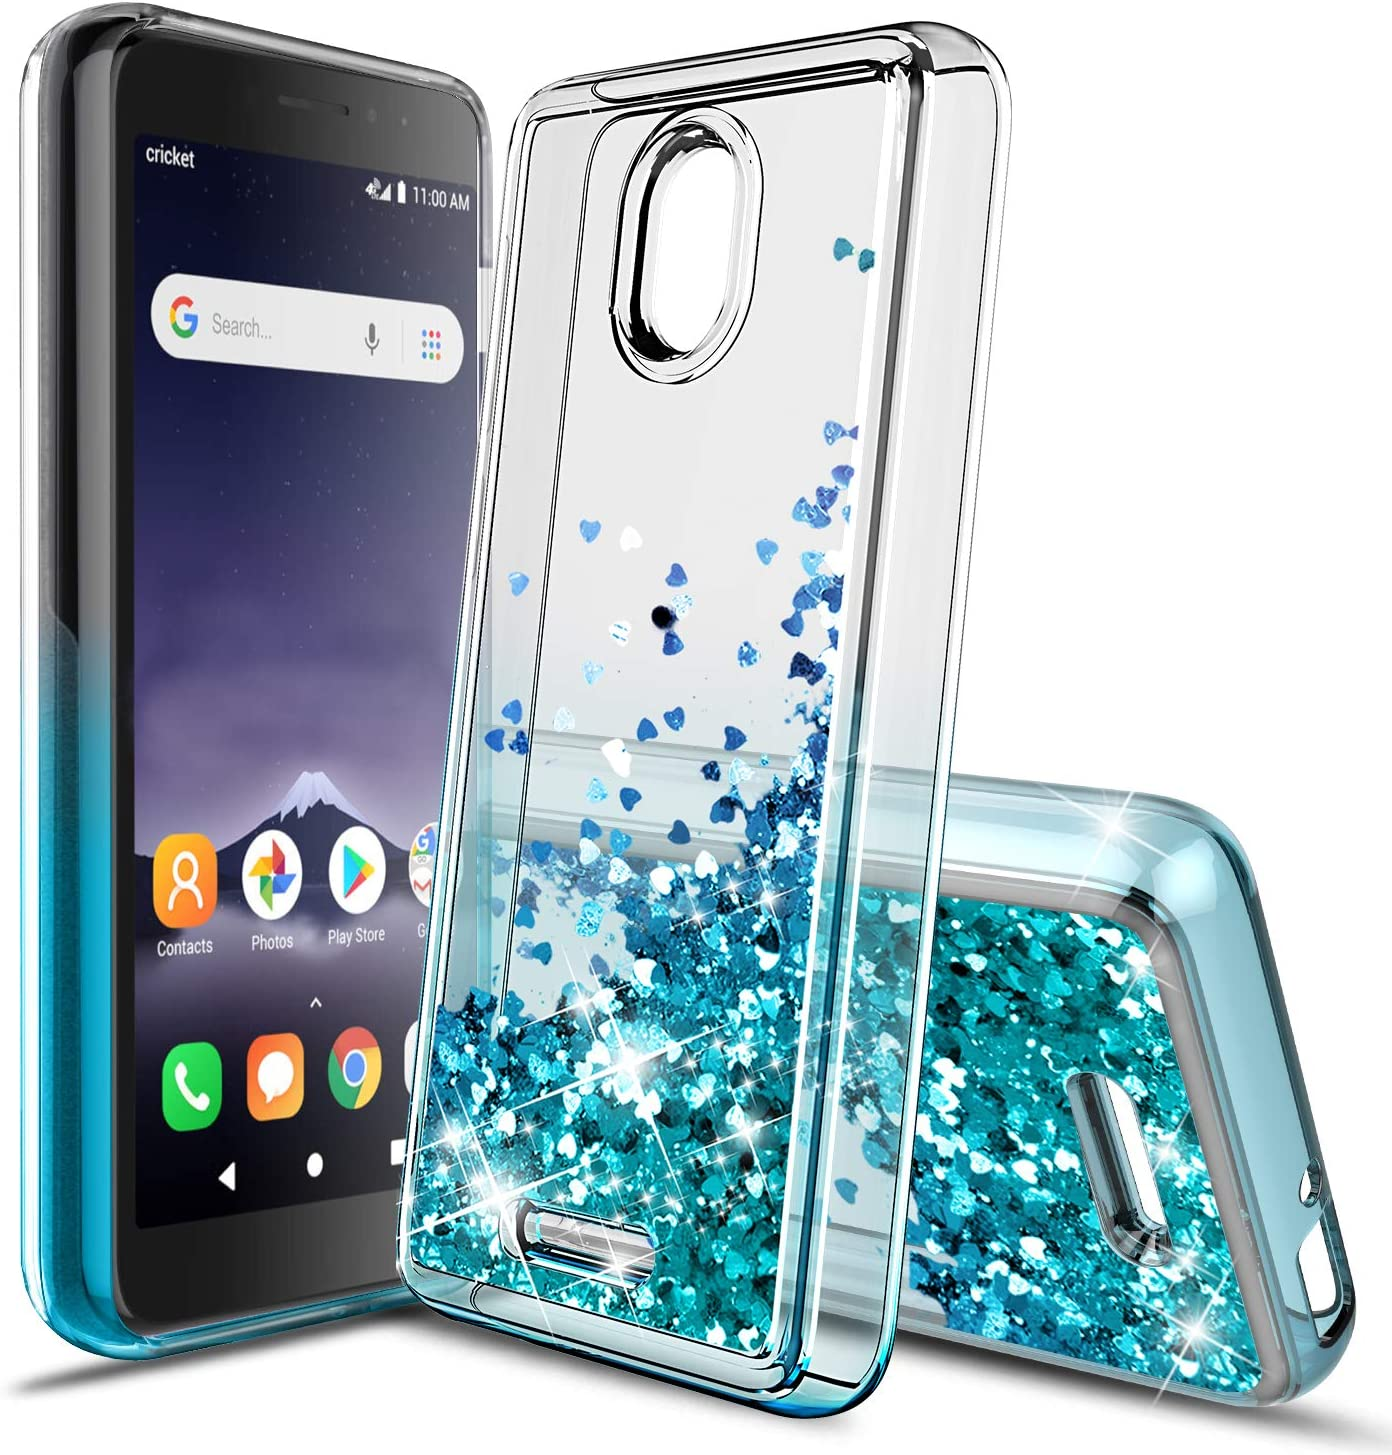 Jemo Case for Alcatel Insight (Cricket)/TCL A1 A501DL Four-Corner Glitter Clear Bling Quicksand Slim Shockproof Protective for Girls/Women(Teal/Purple)